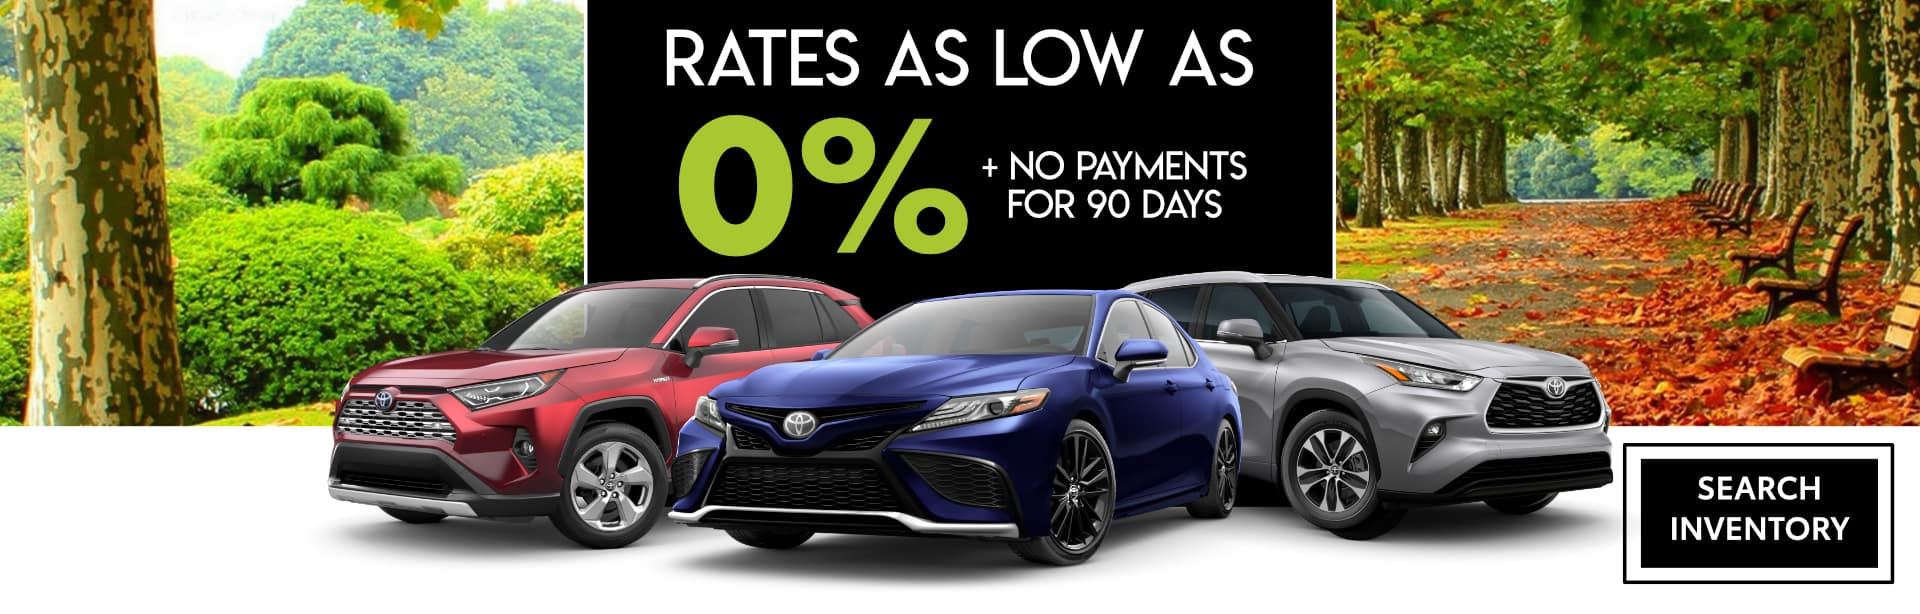 Sept 21 Low Rate